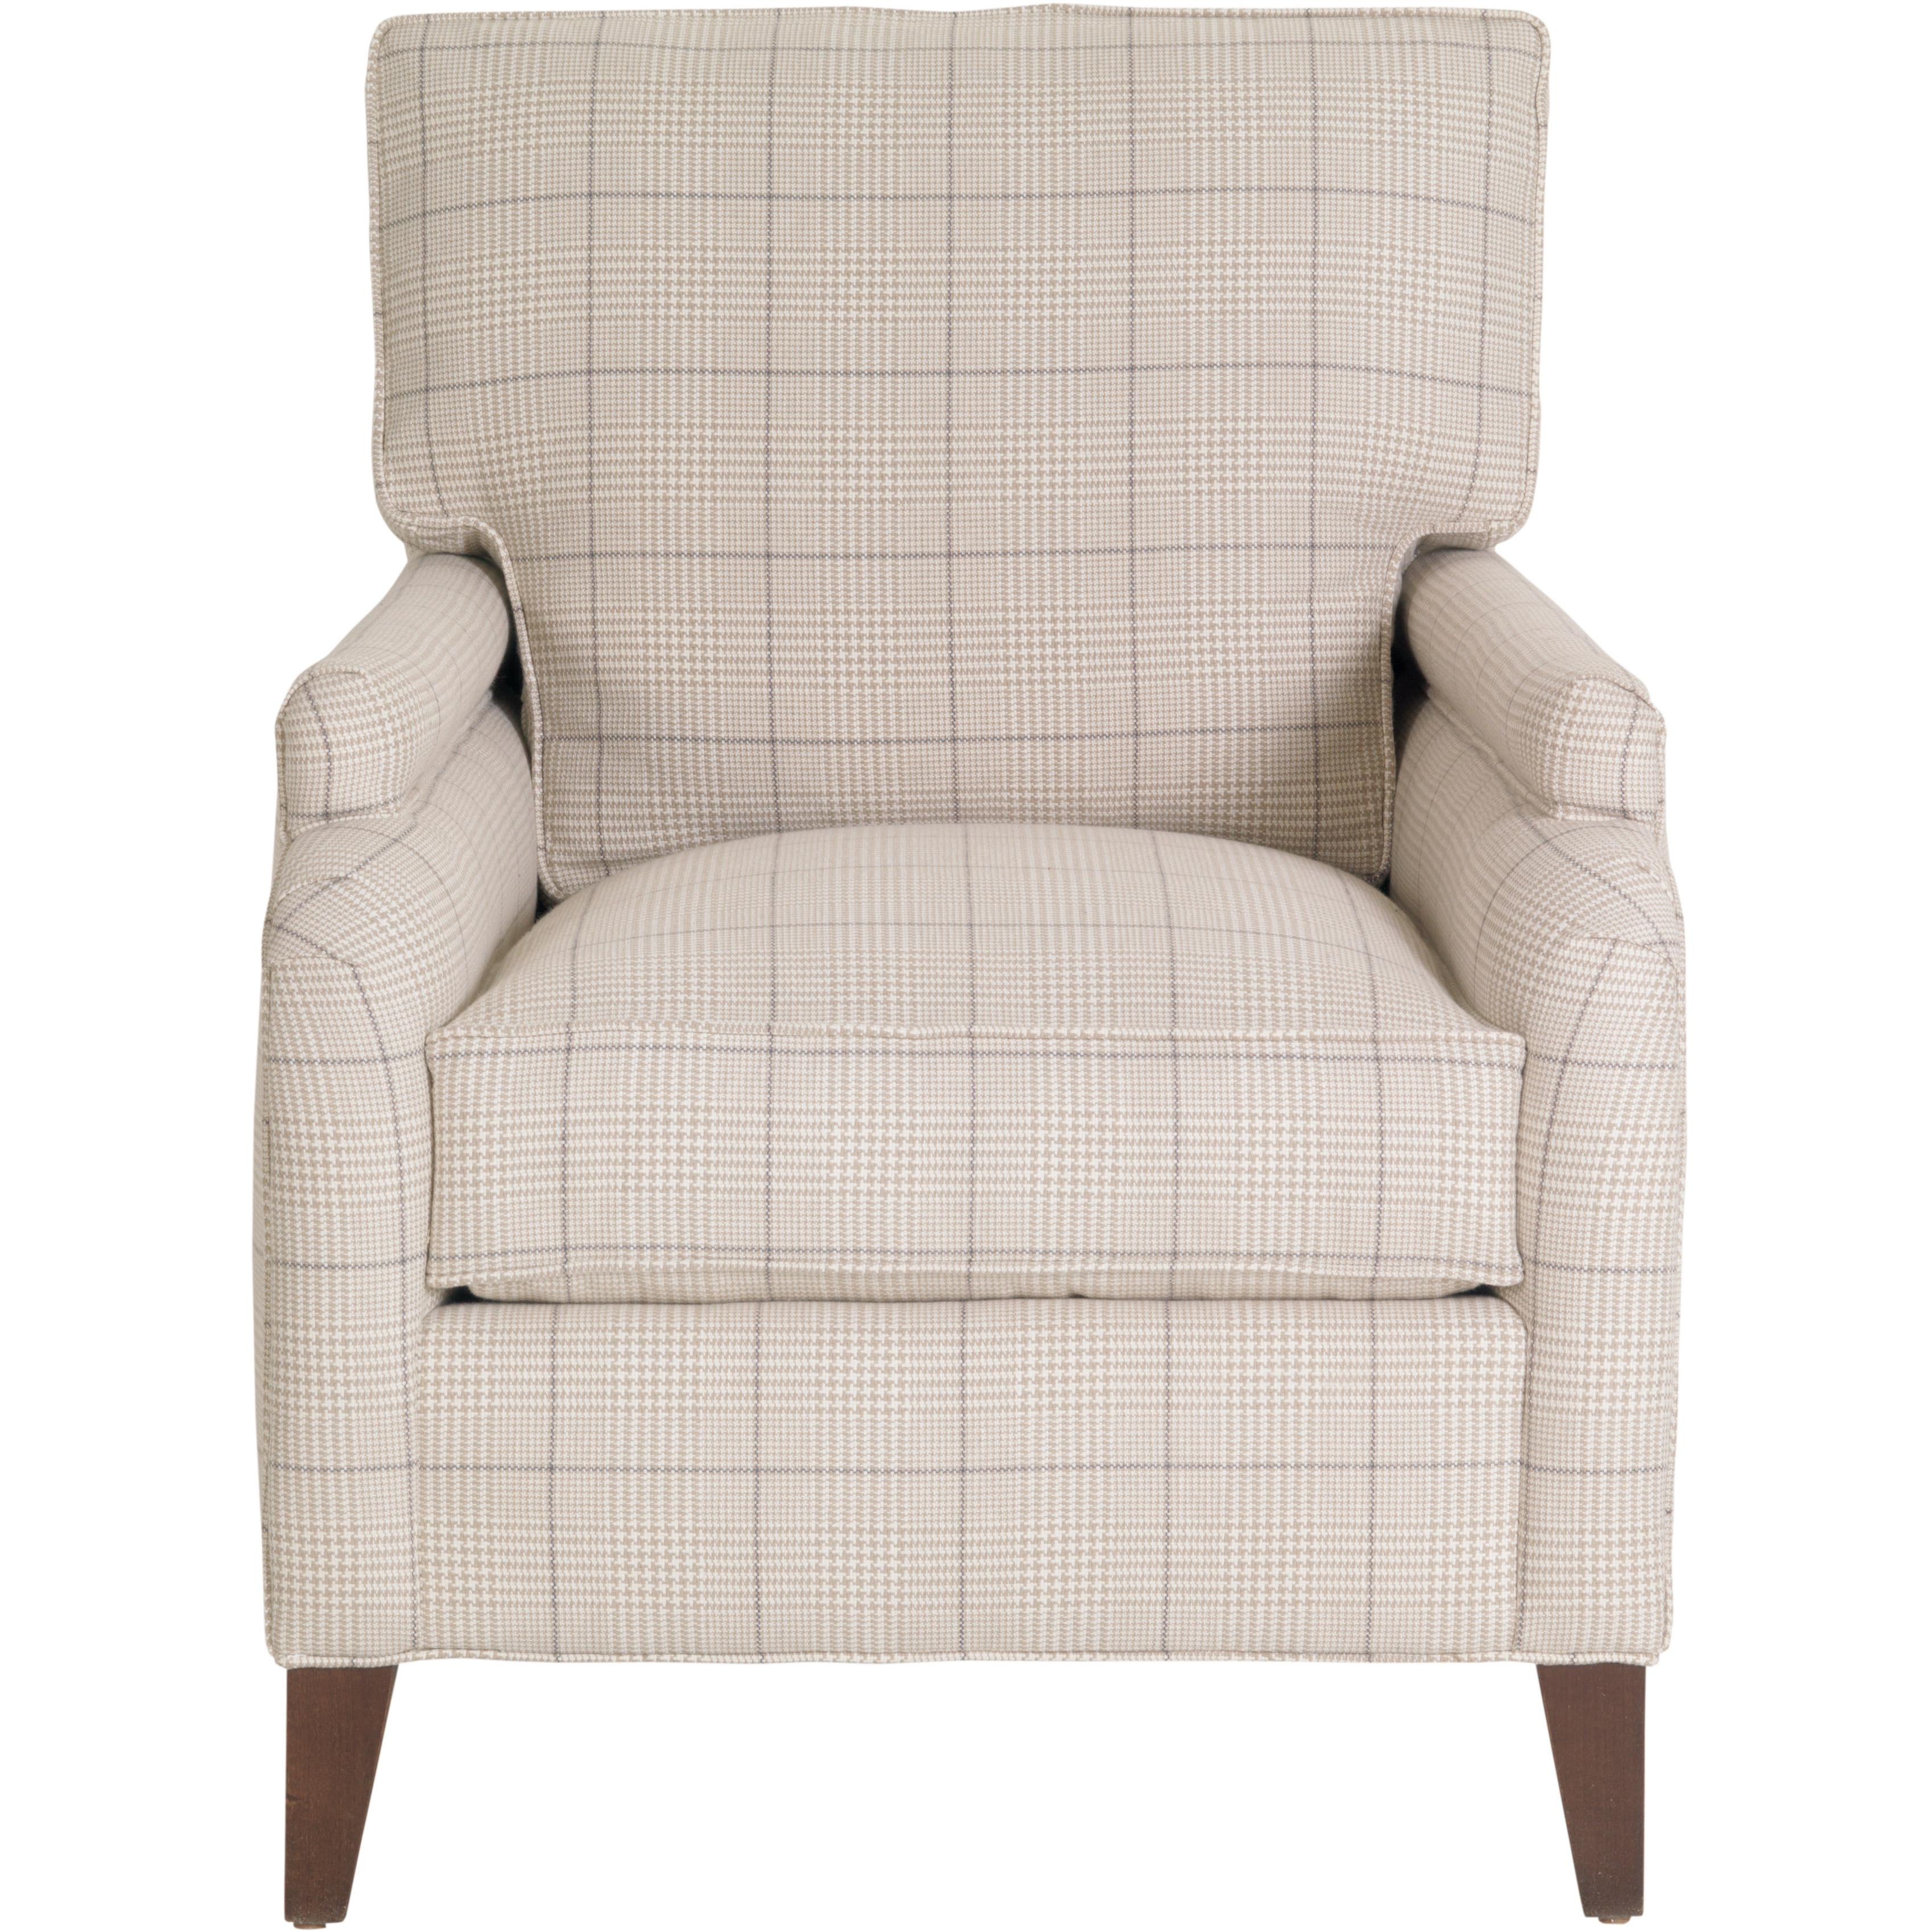 Ginger Traditional Chair by Vanguard Furniture at Baer's Furniture